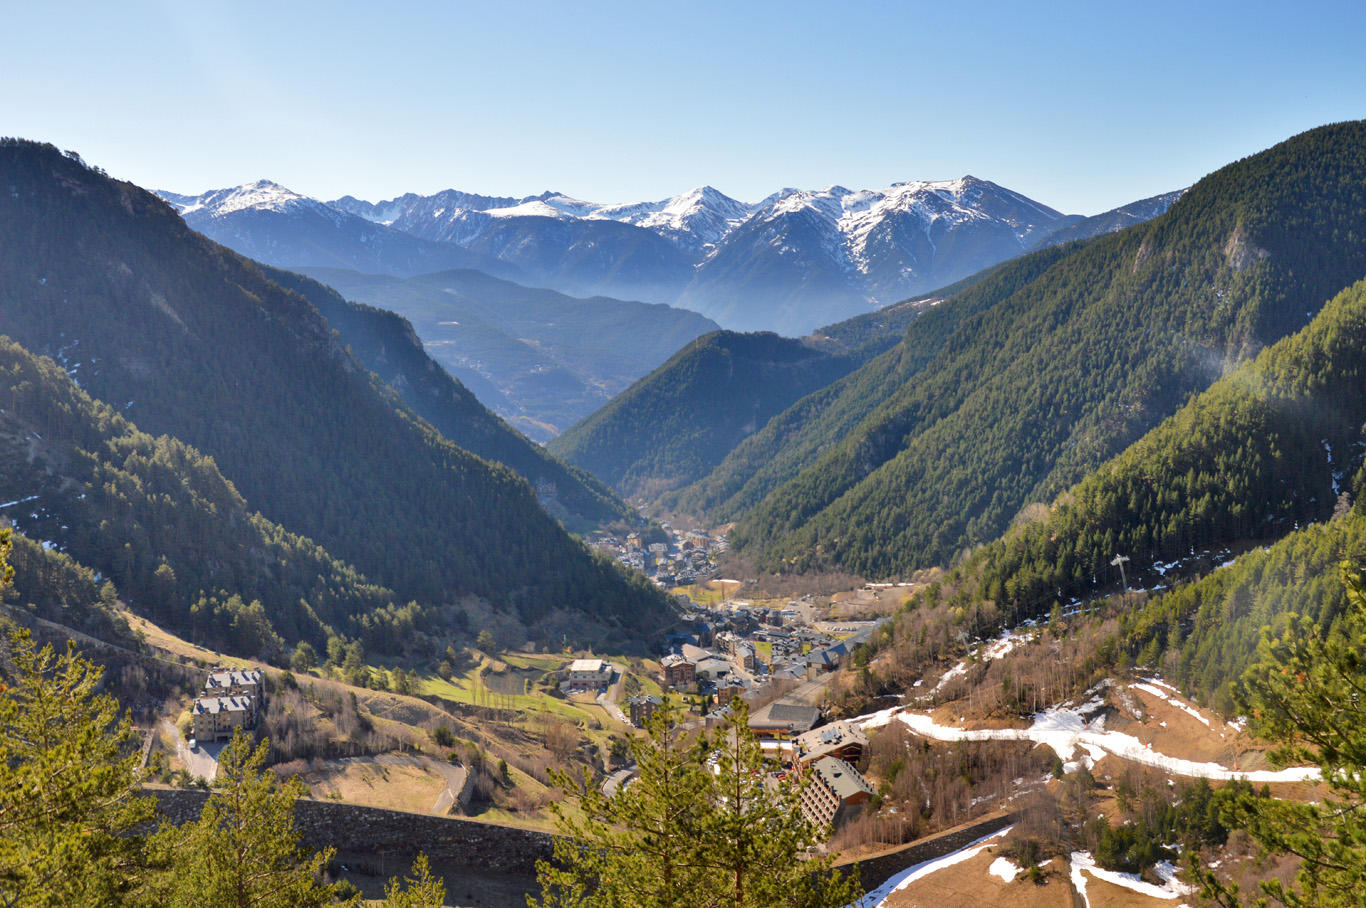 Hiking in the Pyrenees